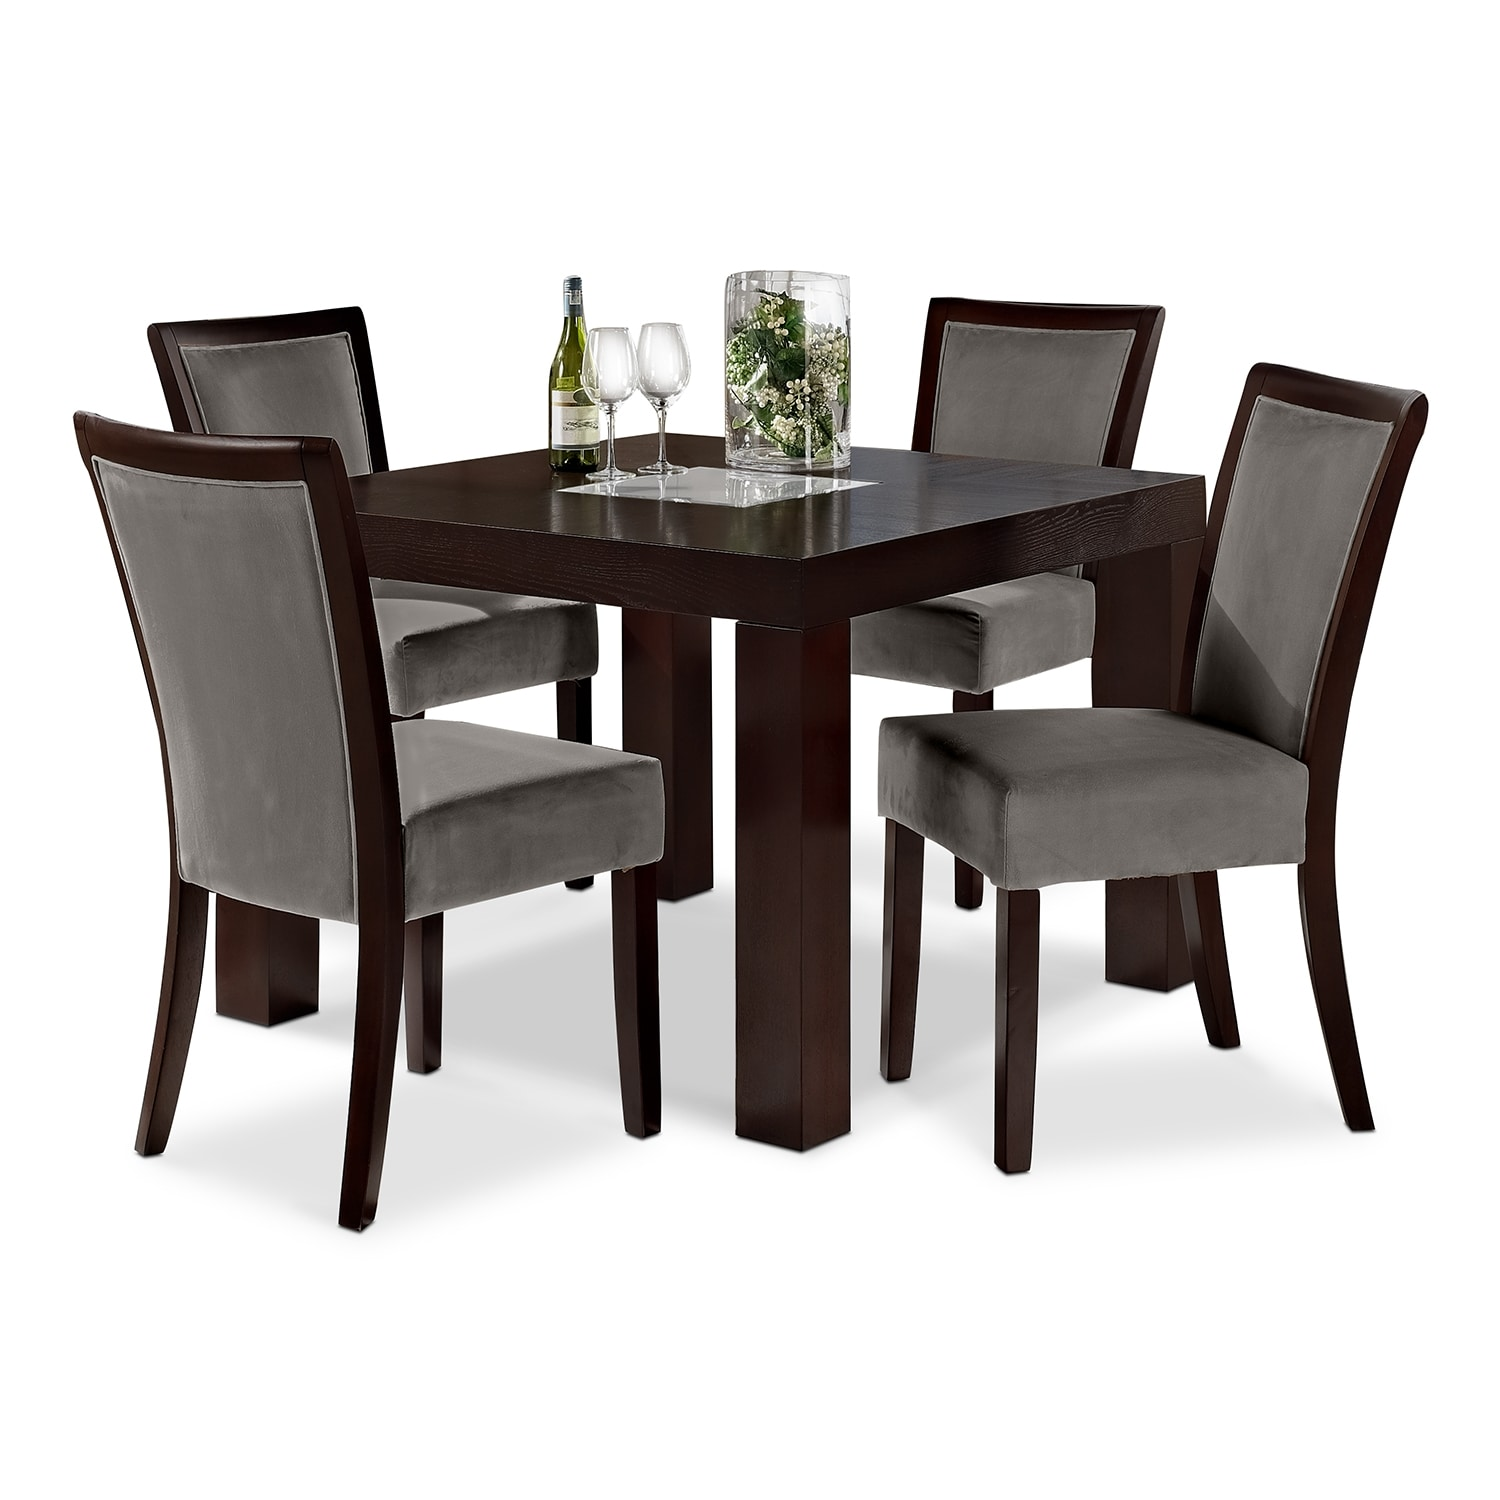 "[Tango Gray 5 Pc. Dinette (42"" Table)]"